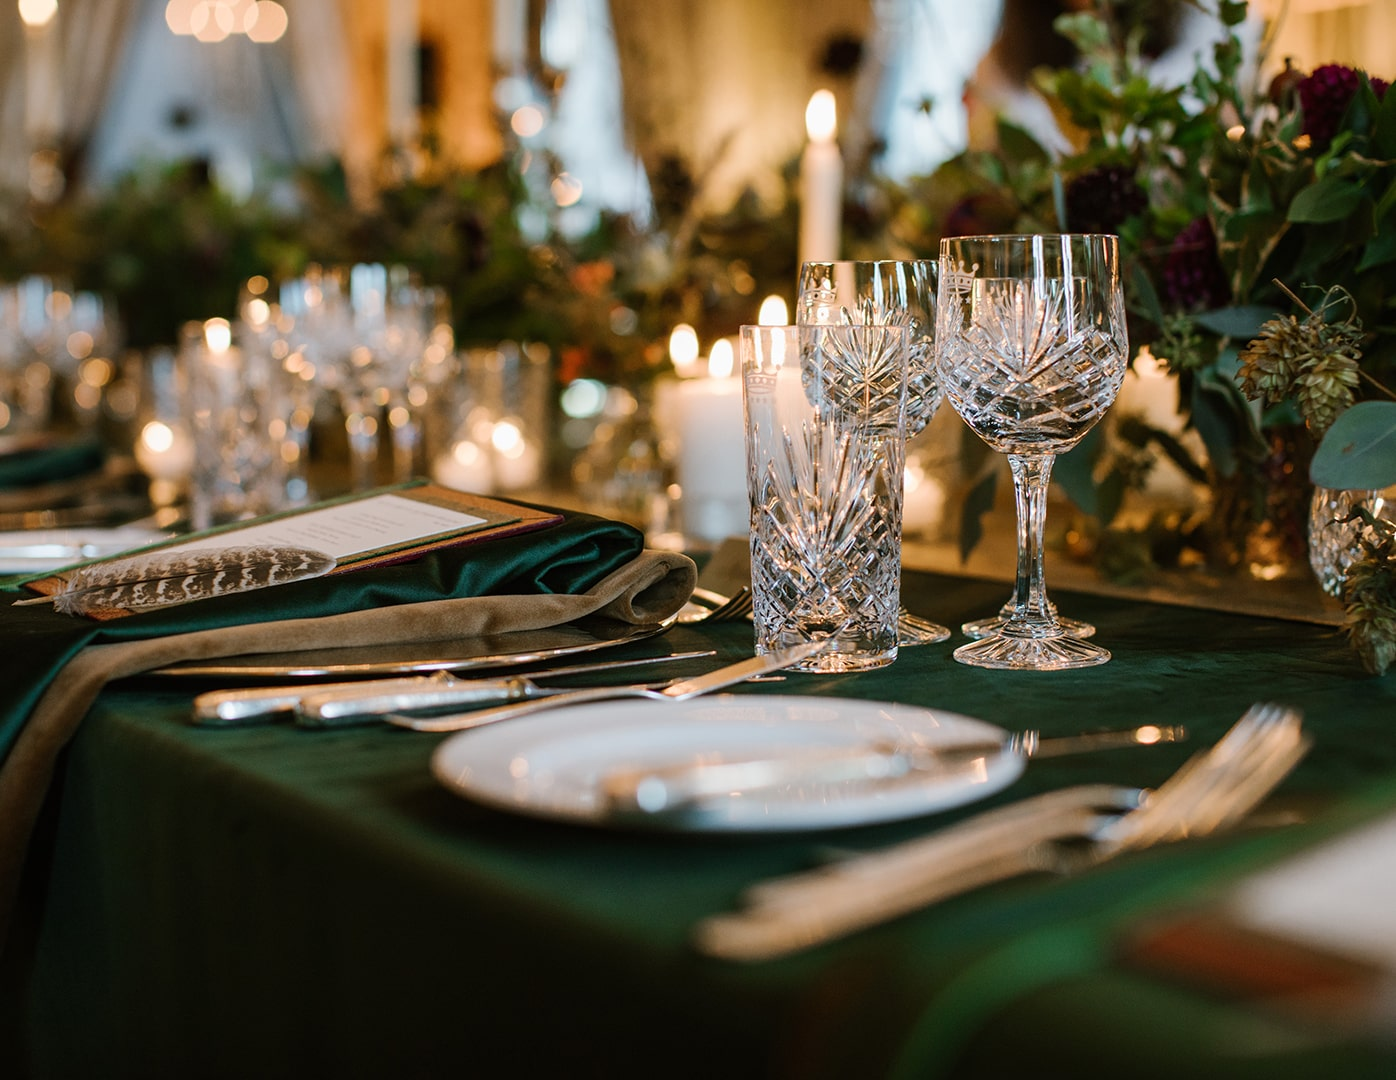 Christmas table setting, dromoland Castle, Christmas table, Christmas decorations, Destination Wedding Ireland, Event Planner in Ireland